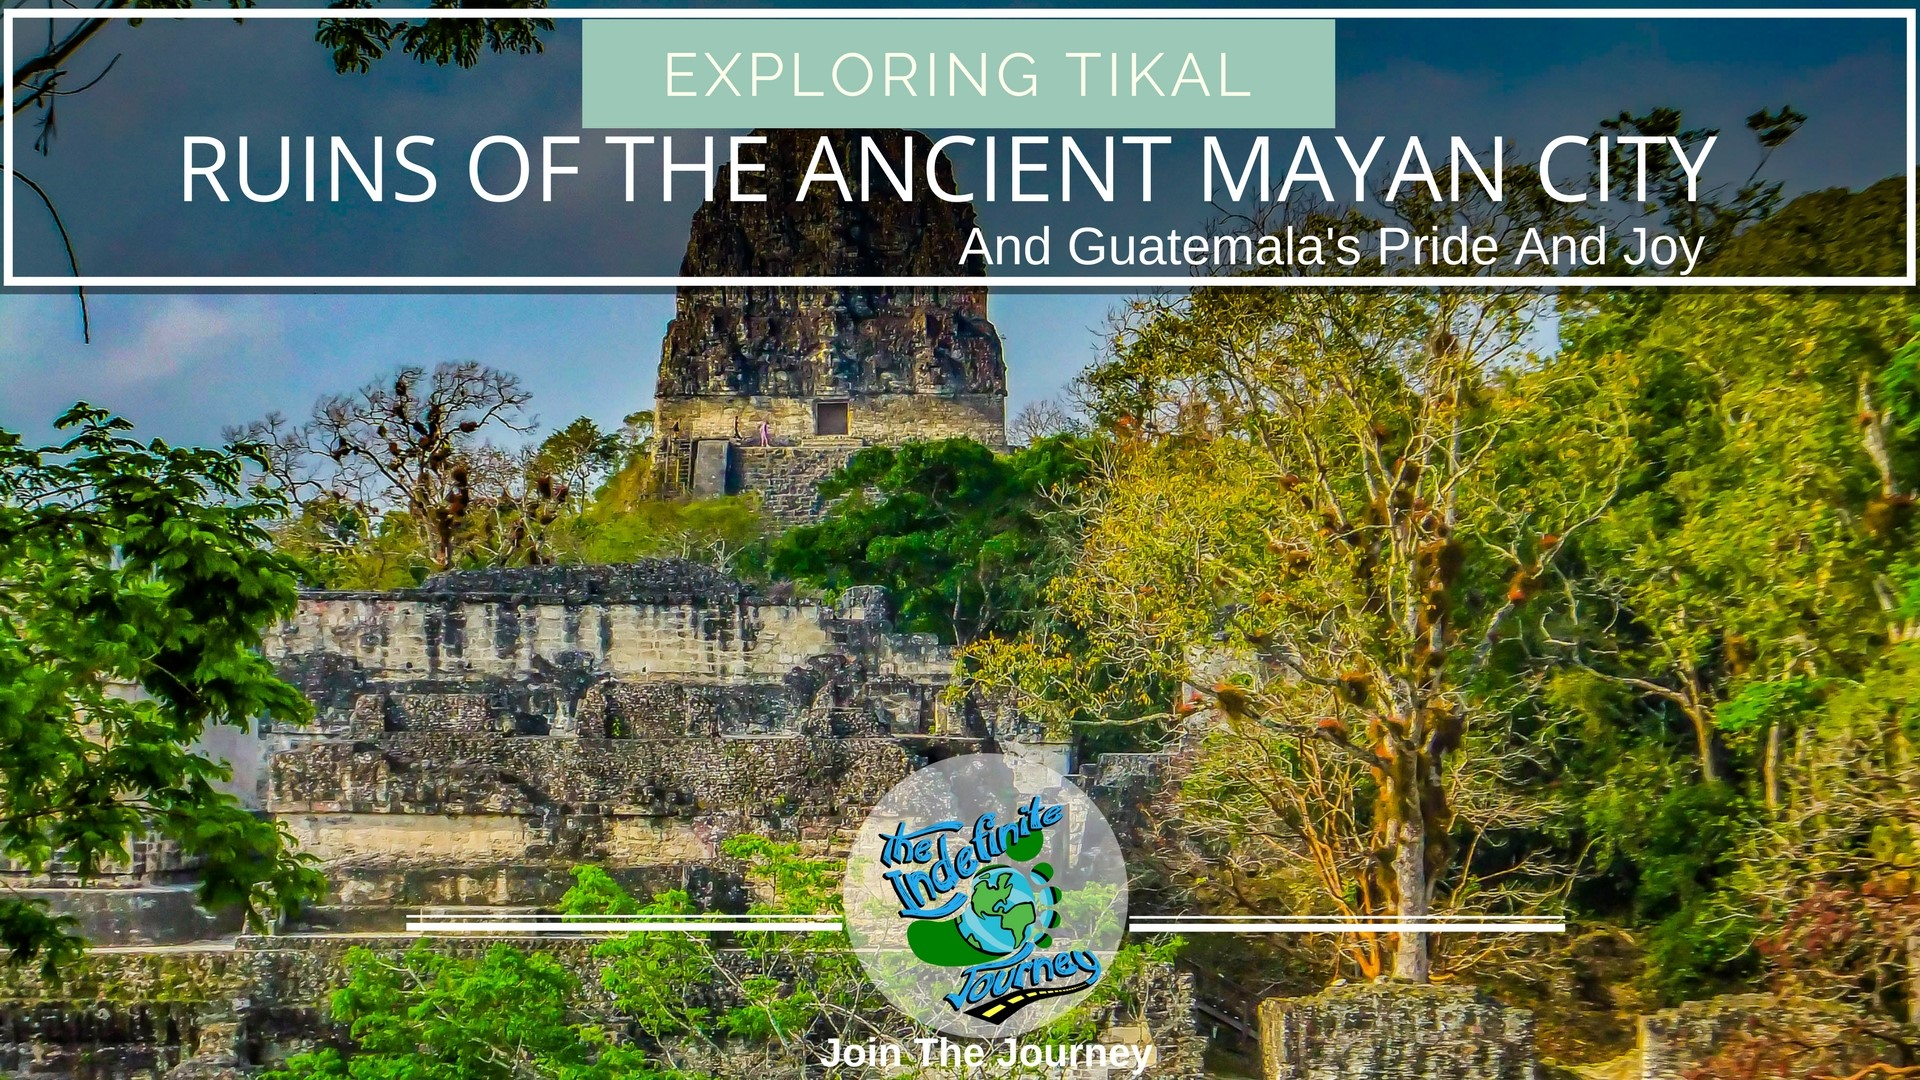 Exploring Tikal - Ruins Of The Ancient Mayan City And Guatemala's Pride And Joy